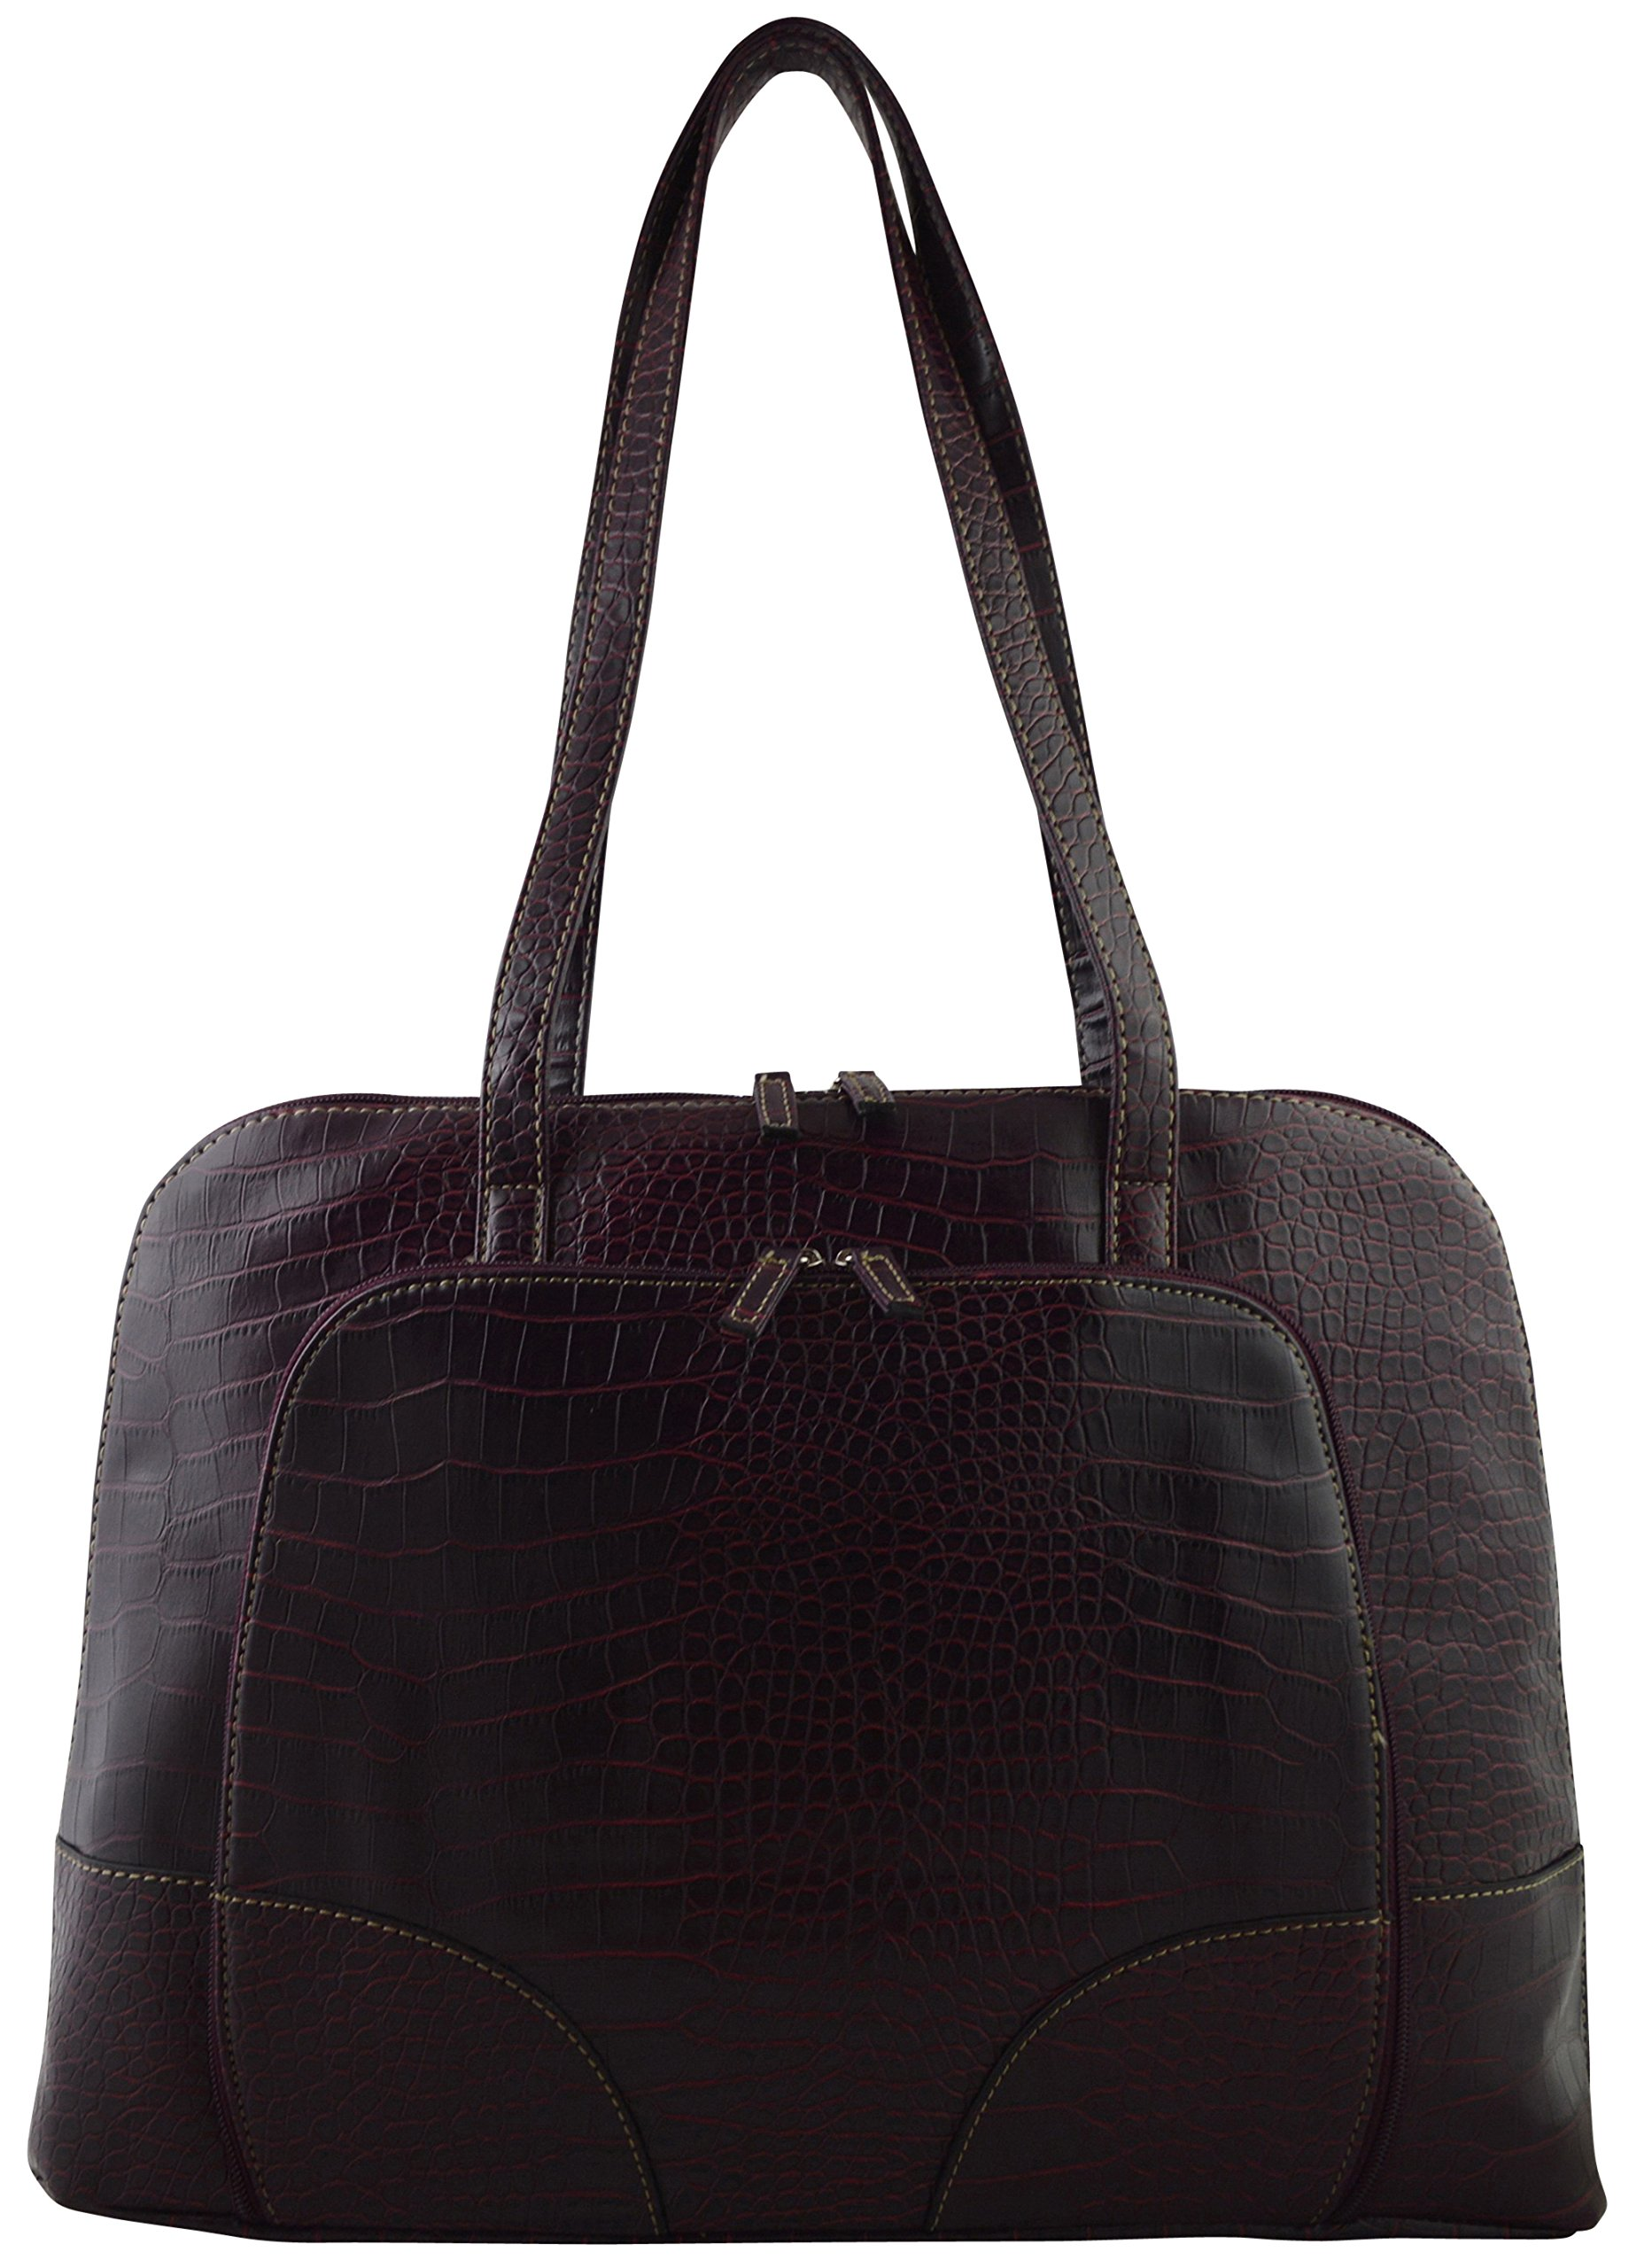 Ultimate Work Tote, Business Women's Laptop Tote